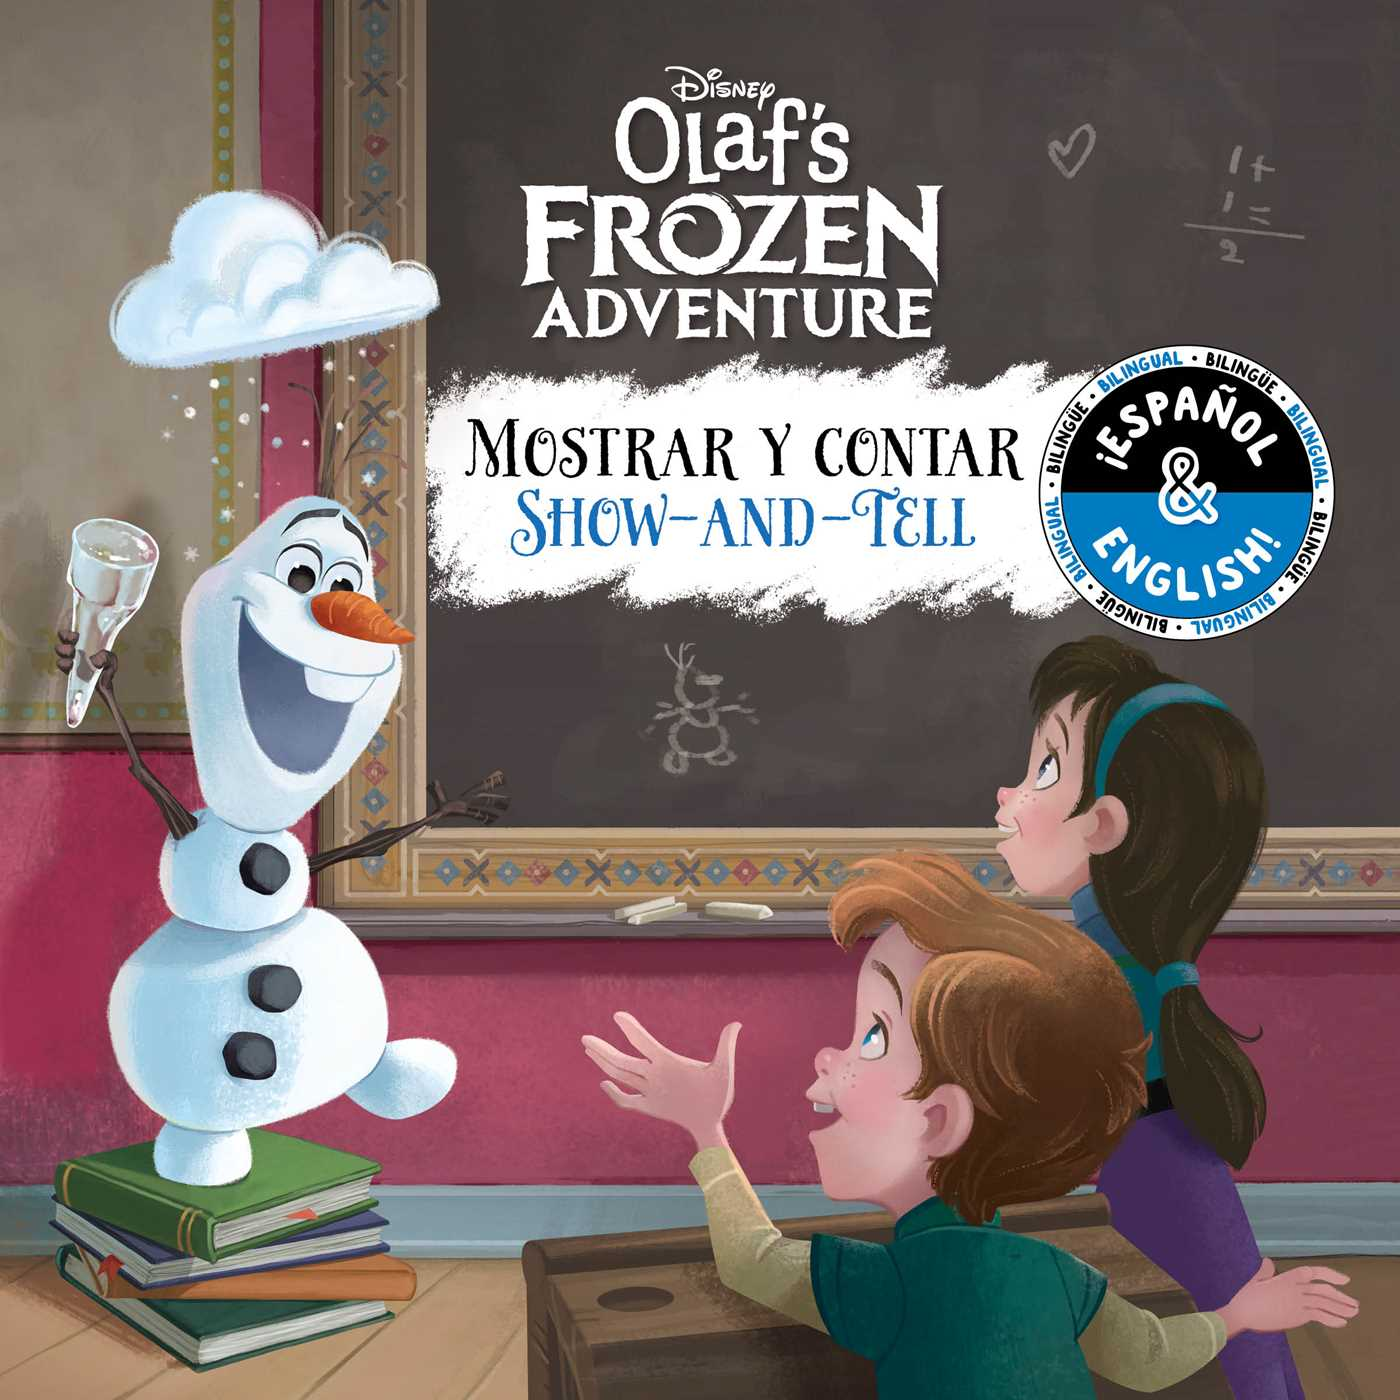 Show and tell mostrar y contar english spanish disney olaf s frozen adventure book by - Olaf s frozen adventure download ...